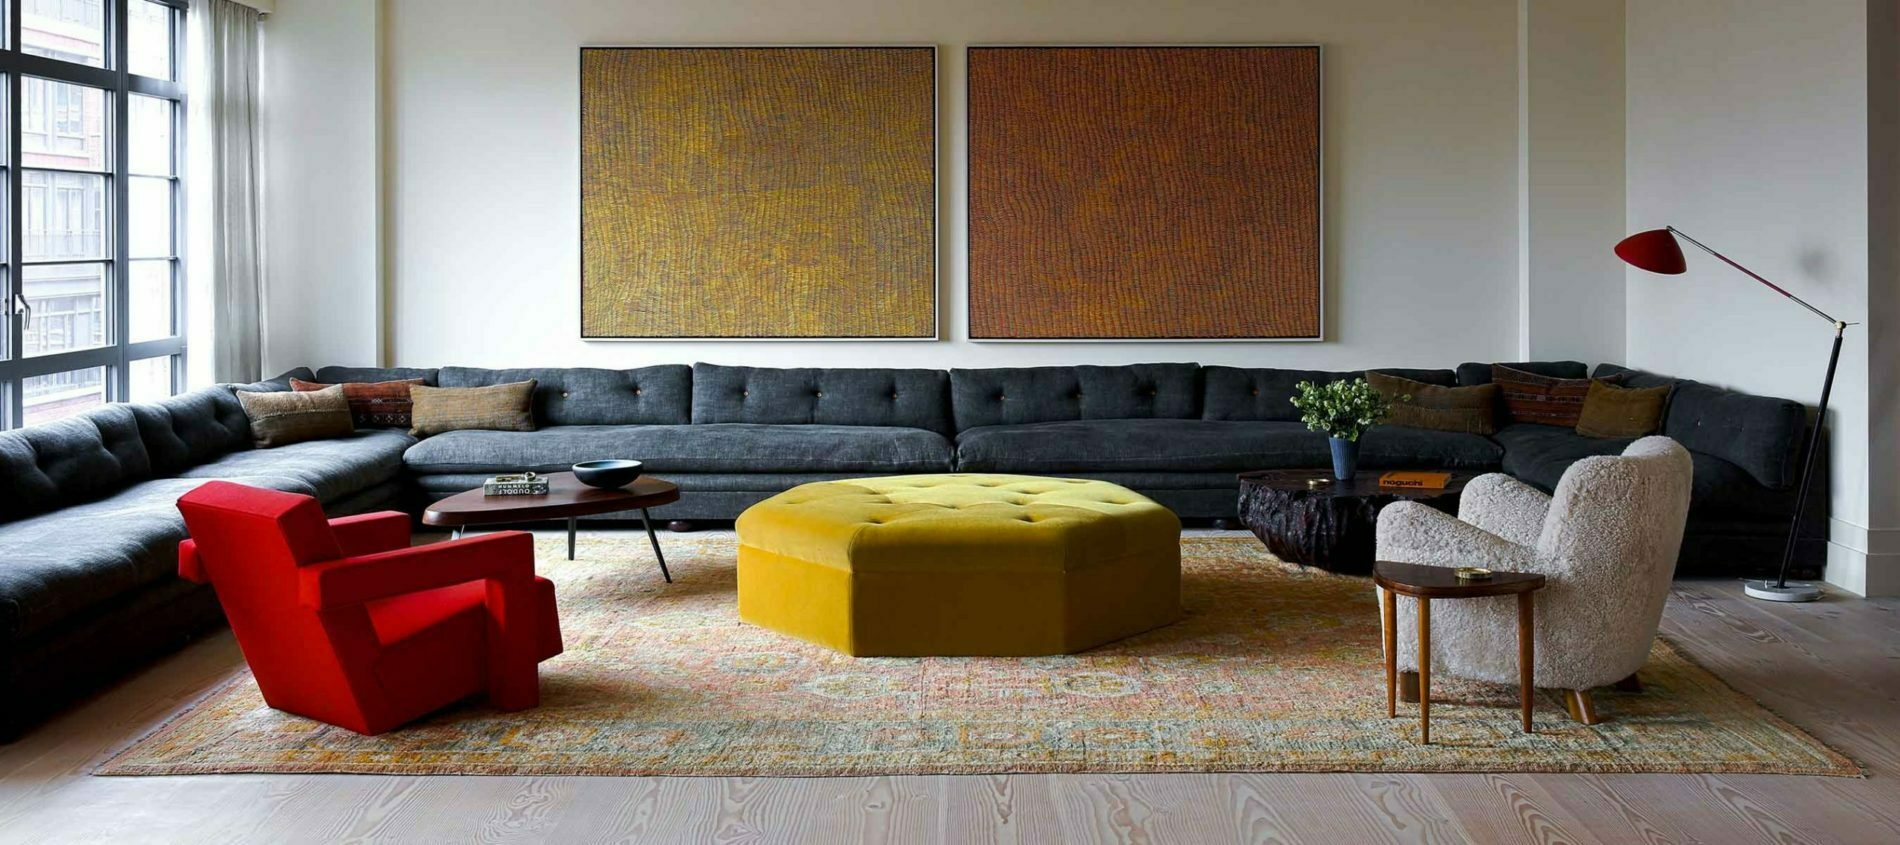 Large Bespoke Turkish sofa, size of living room around yellow heptagonal pouffe